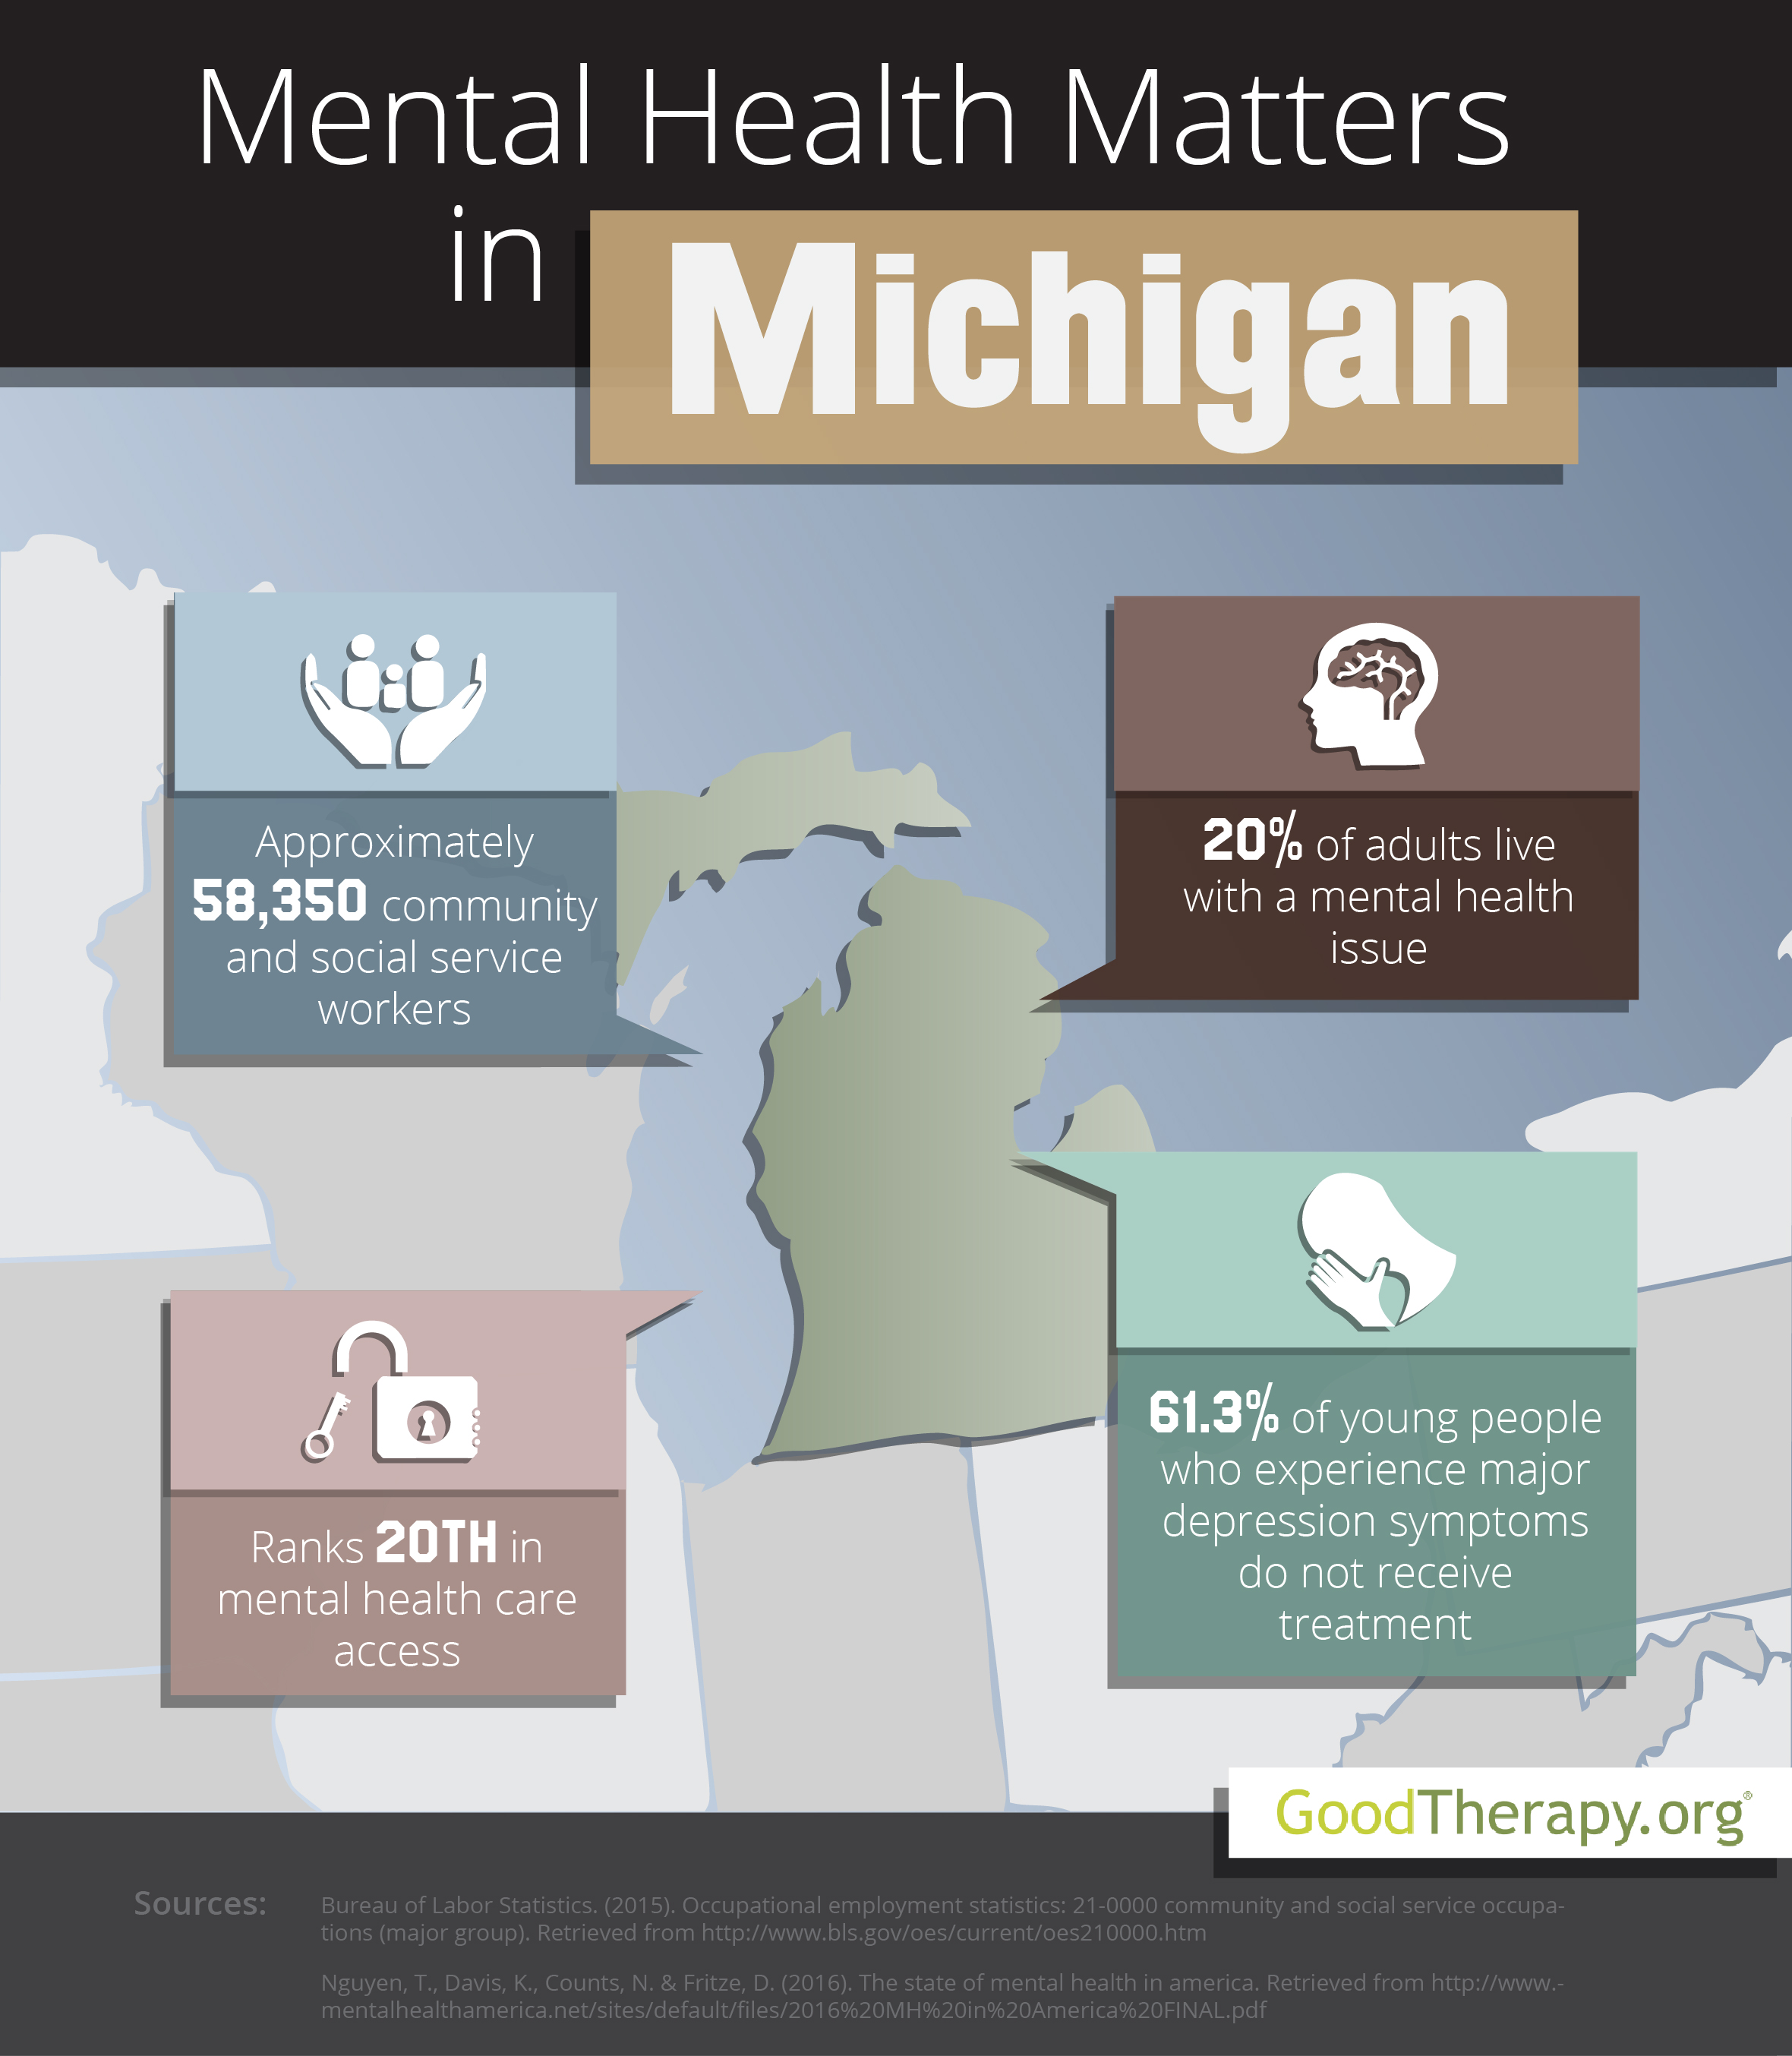 Michigan Mental Health Statistics